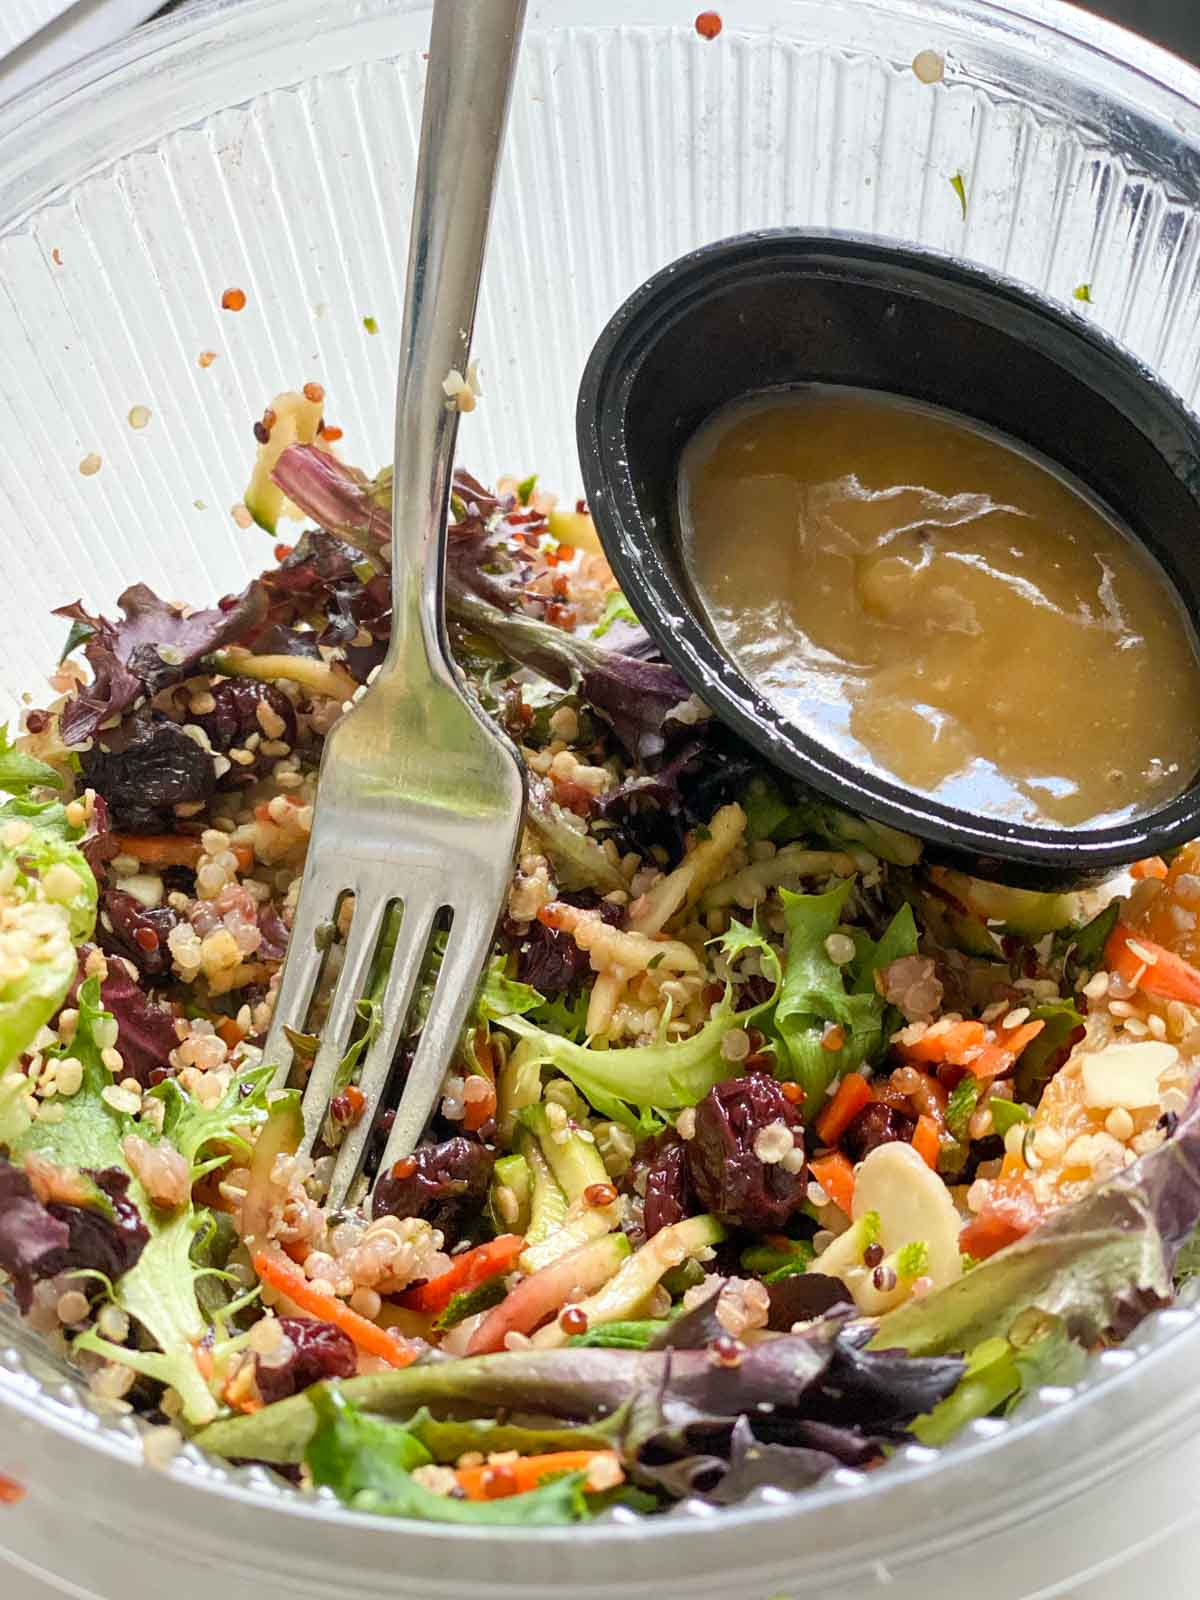 Sakara summer sun salad with fork in bowl and dressing on the side